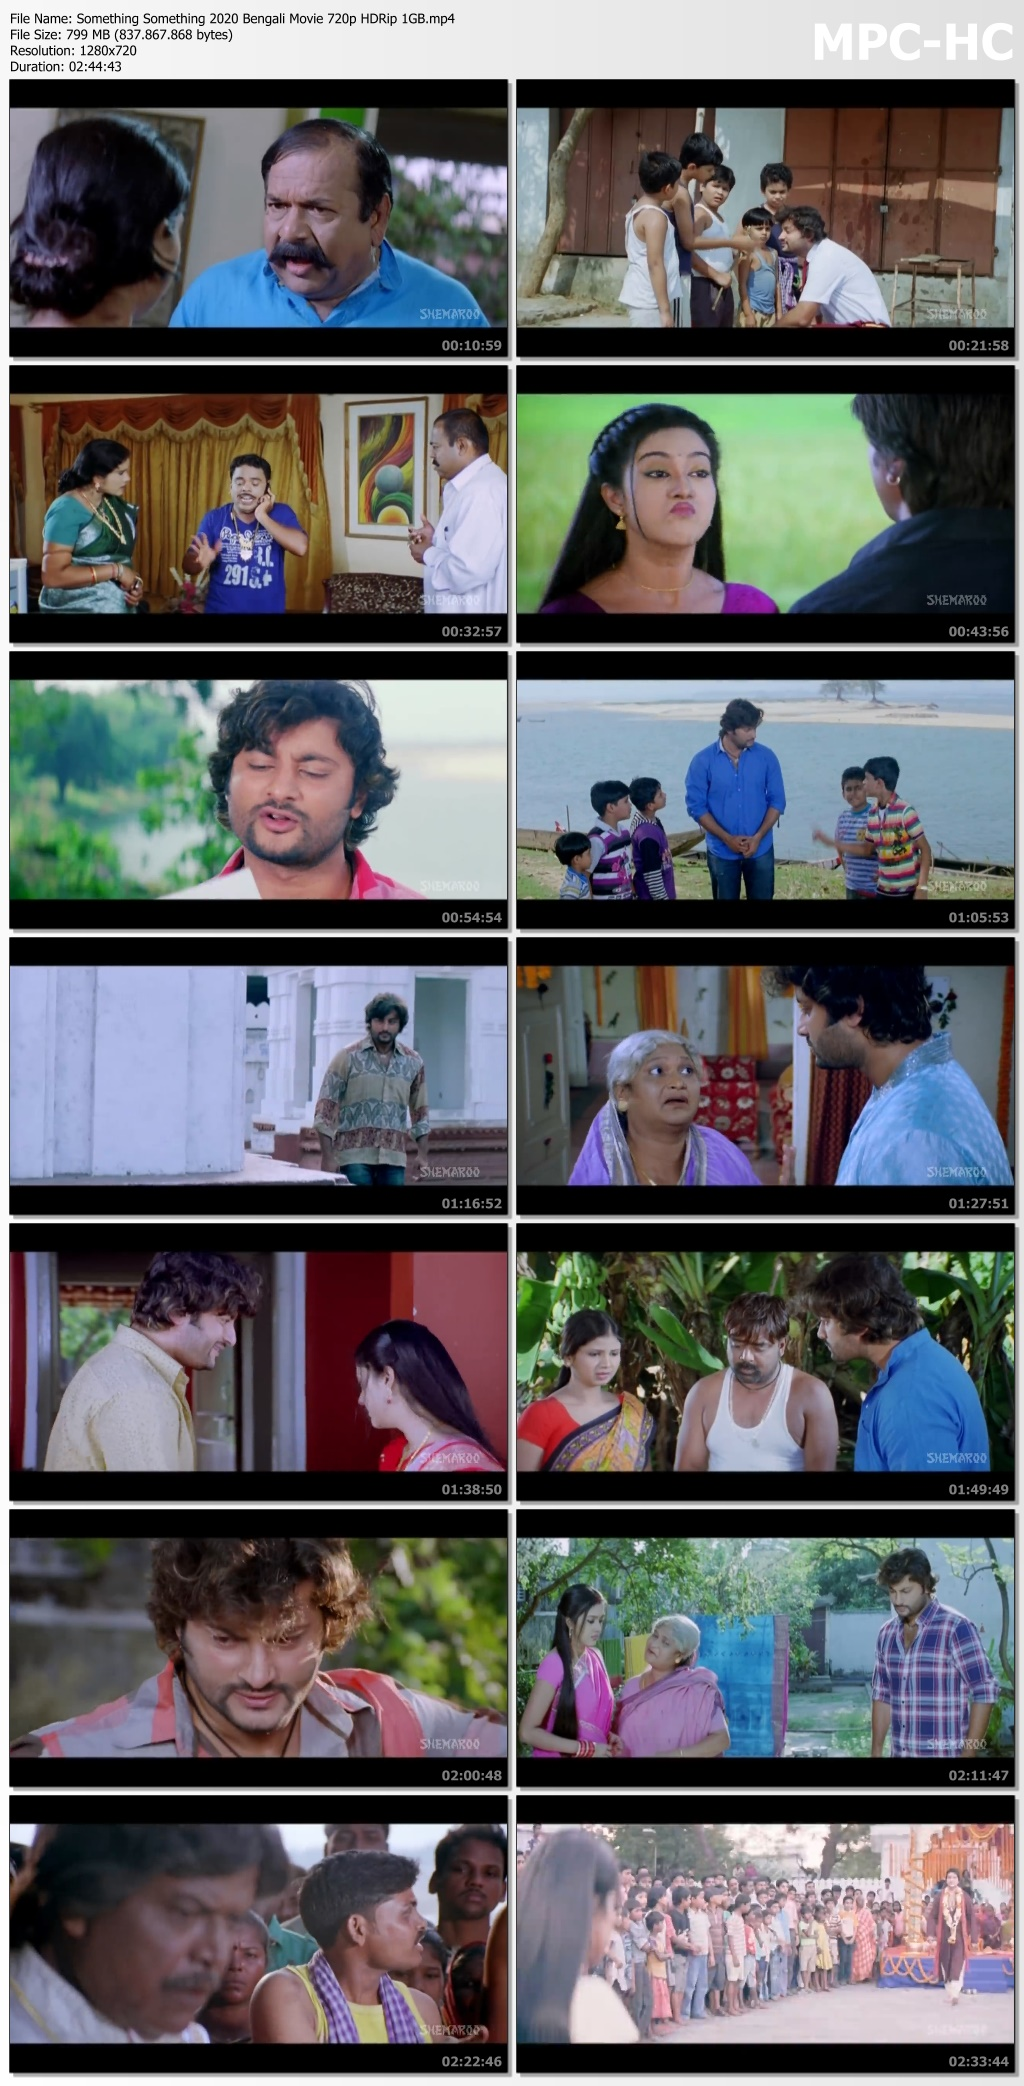 Something-Something-2020-Bengali-Movie-720p-HDRip-1-GB-mp4-thumbs